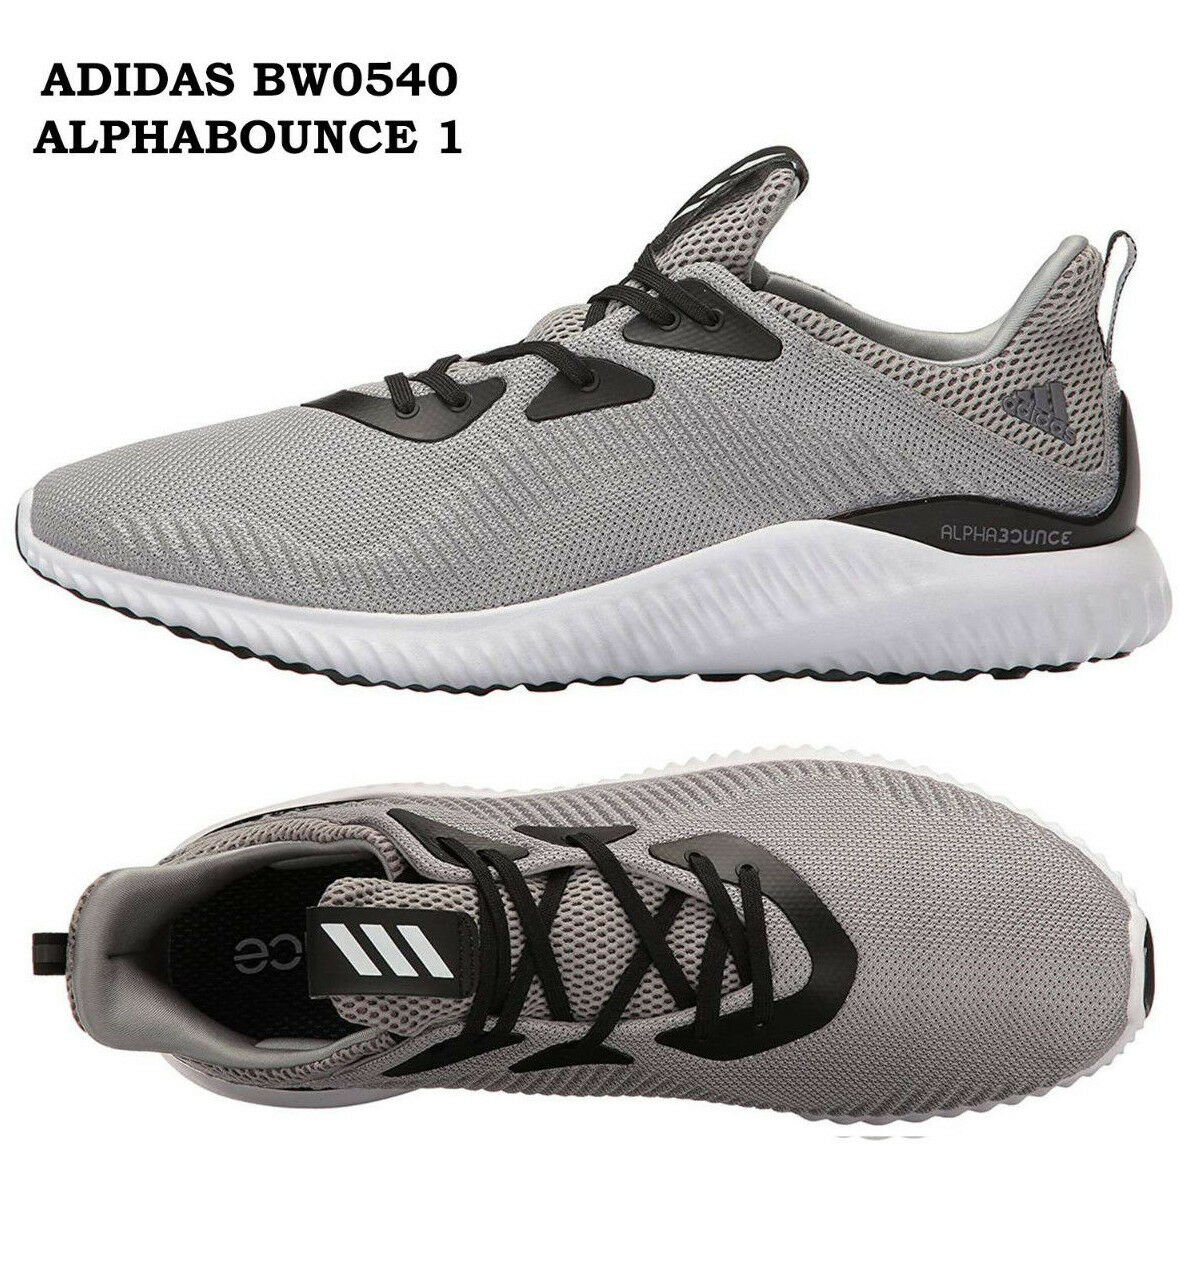 Mens ADIDAS ALPHABOUNCE 1 BW0540 Grey Road Running shoes Mens Sneakers NEW